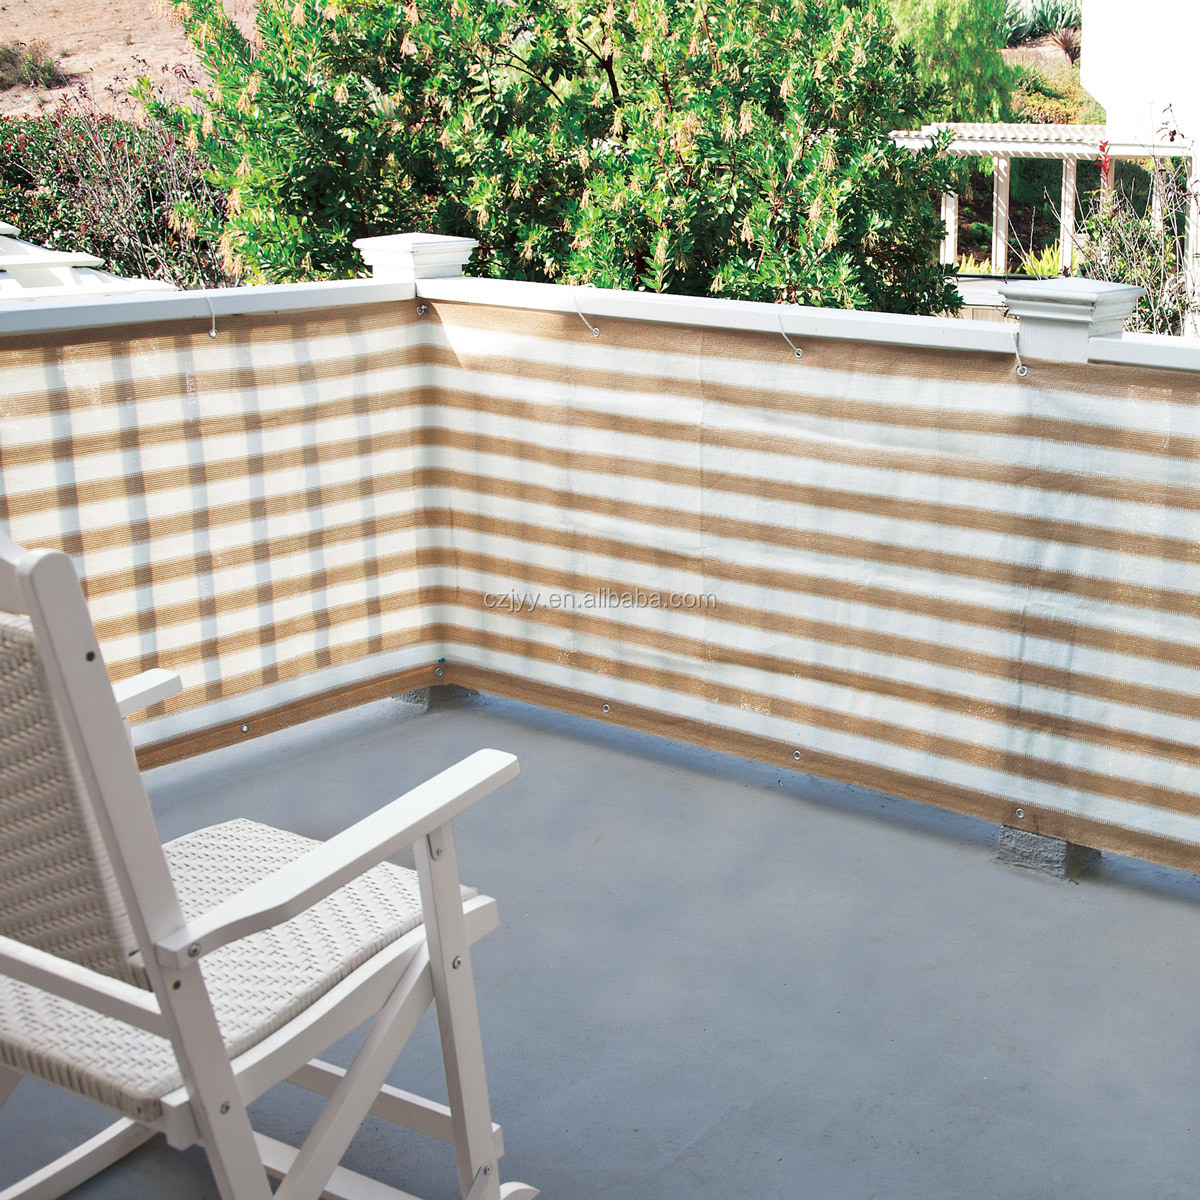 Balcony Privacy Cover Fence Screen For Sun Protection